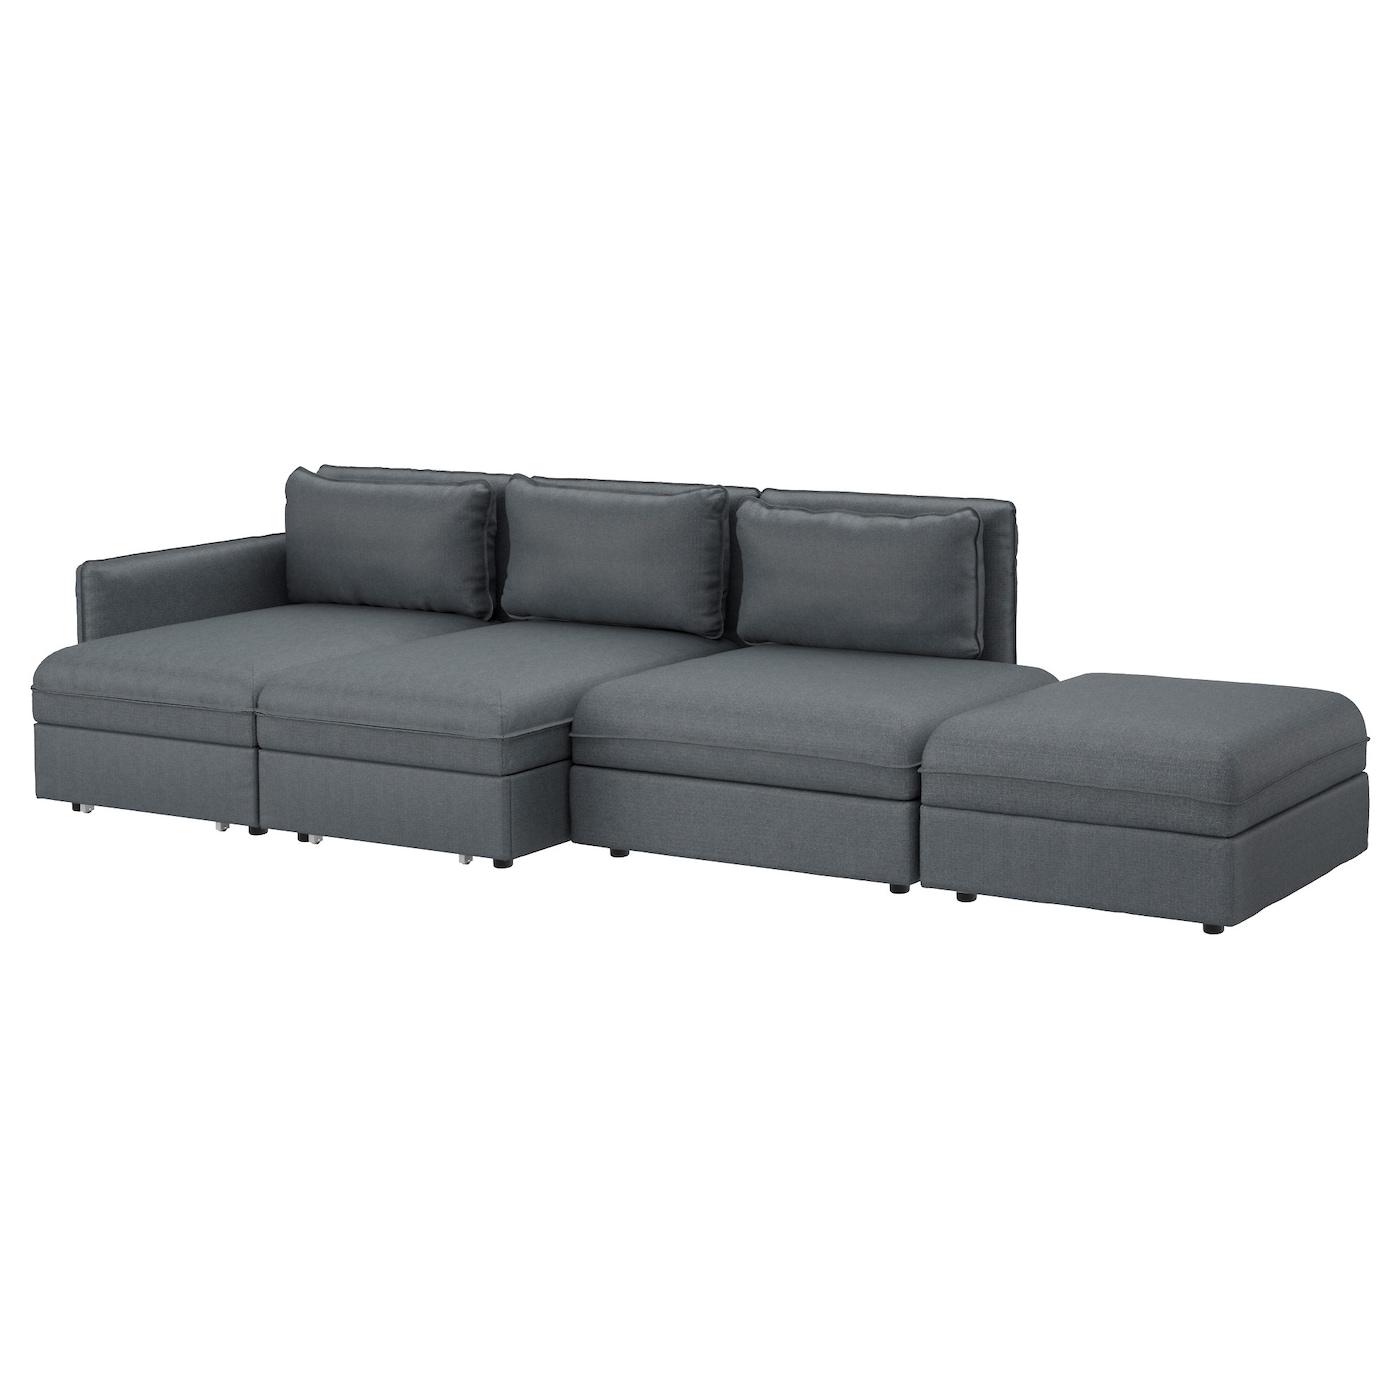 IKEA VALLENTUNA 4-seat Sofa With Bed